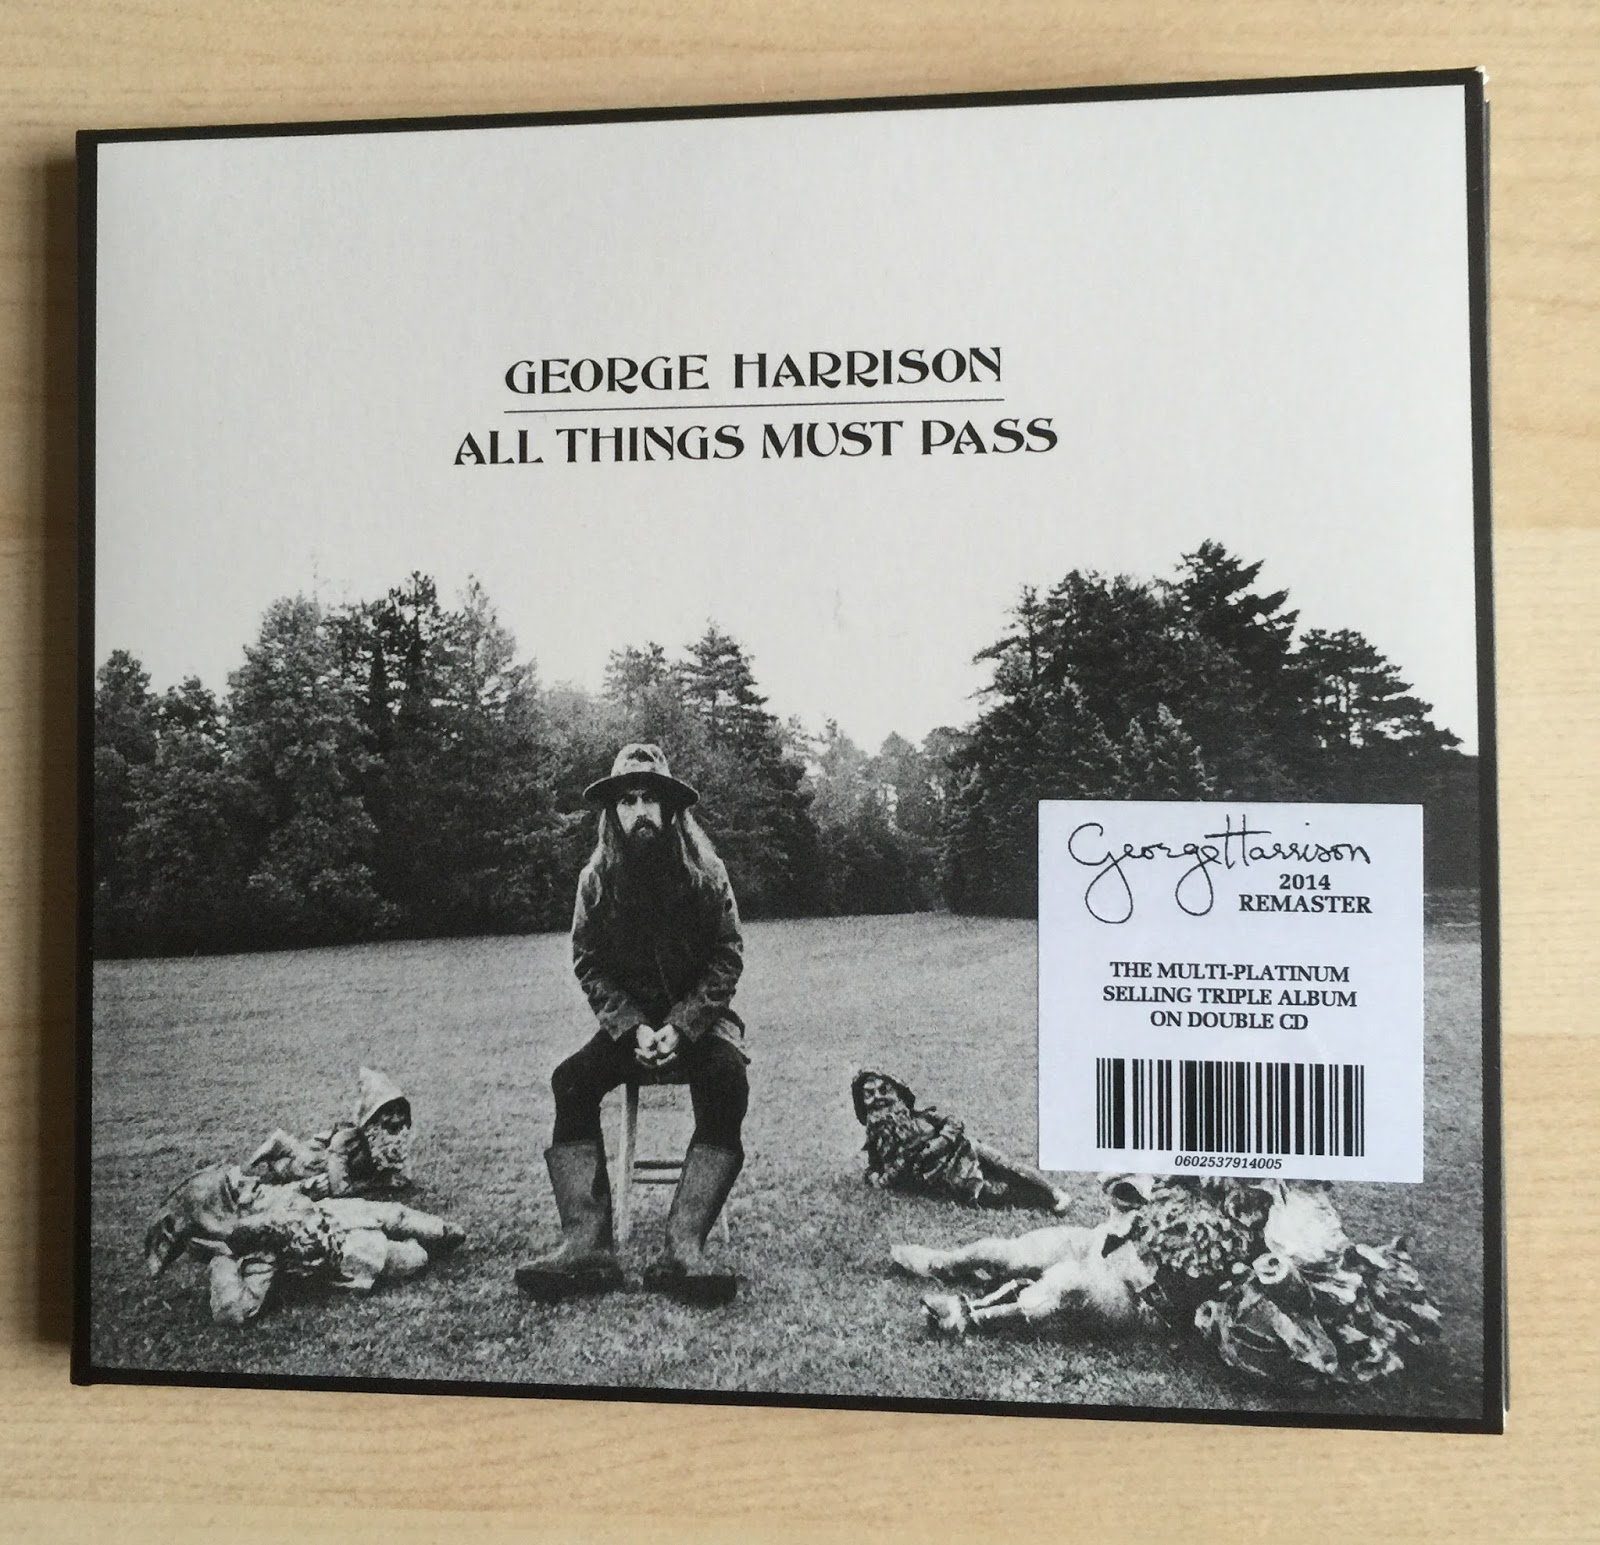 All Things Must Pass By GEORGE HARRISON 2014 Apple 2CD Reissue